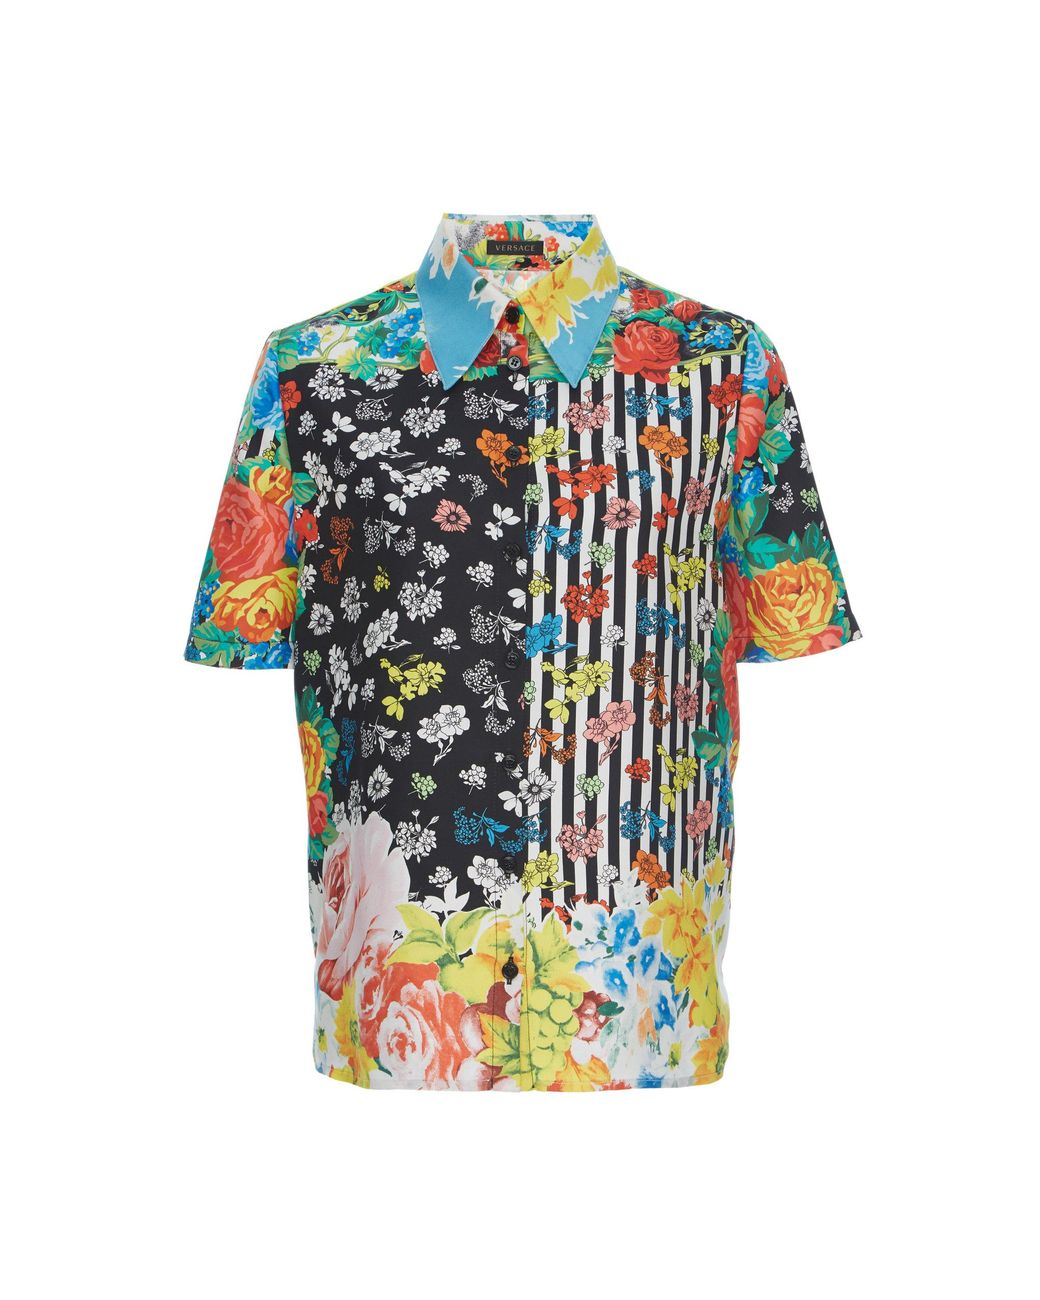 8013bfb7 Versace Floral Short-sleeve Silk Shirt in Blue - Lyst